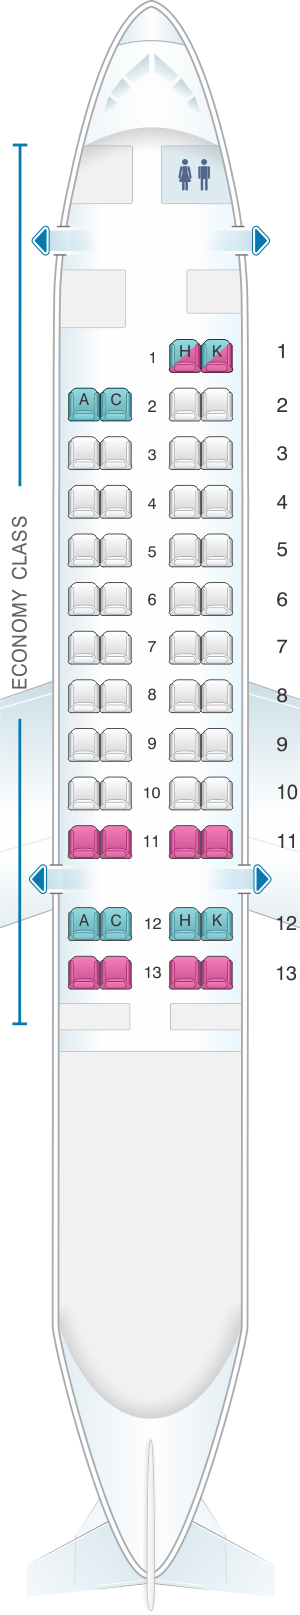 Seat map for Japan Airlines (JAL) DHC8 Q400 Q31